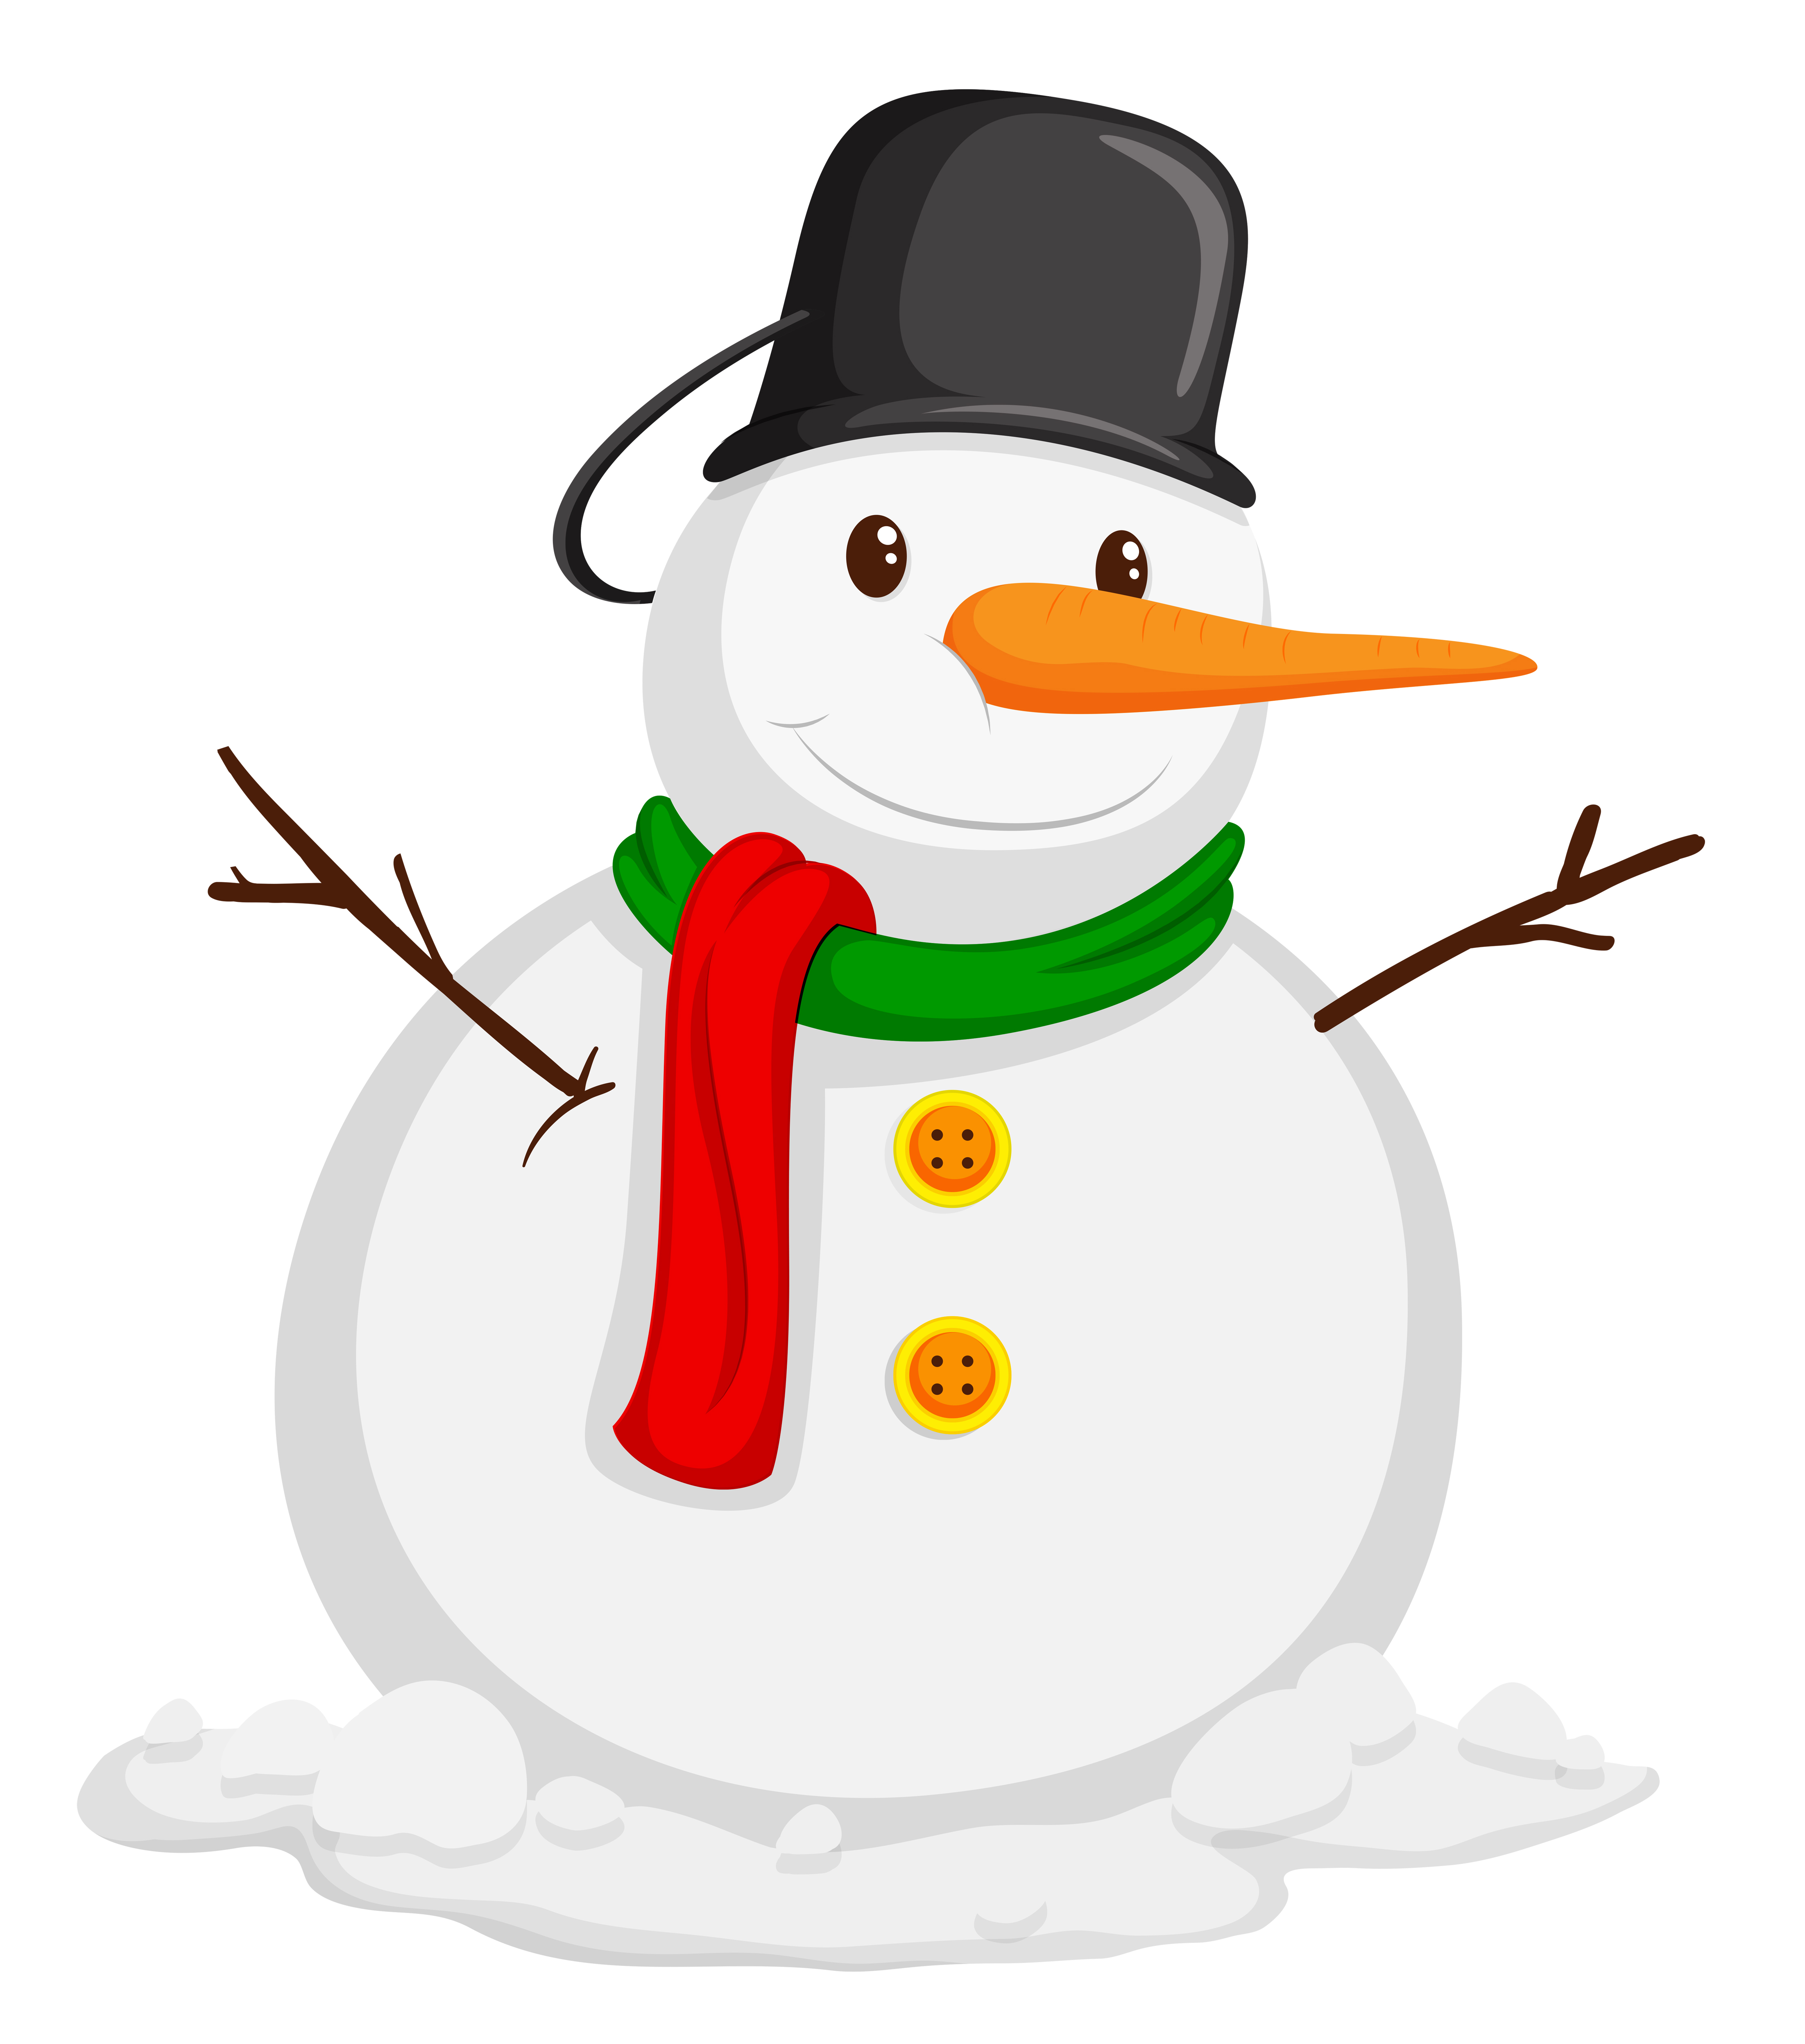 cute snowman with scarf - Download Free Vectors, Clipart ...